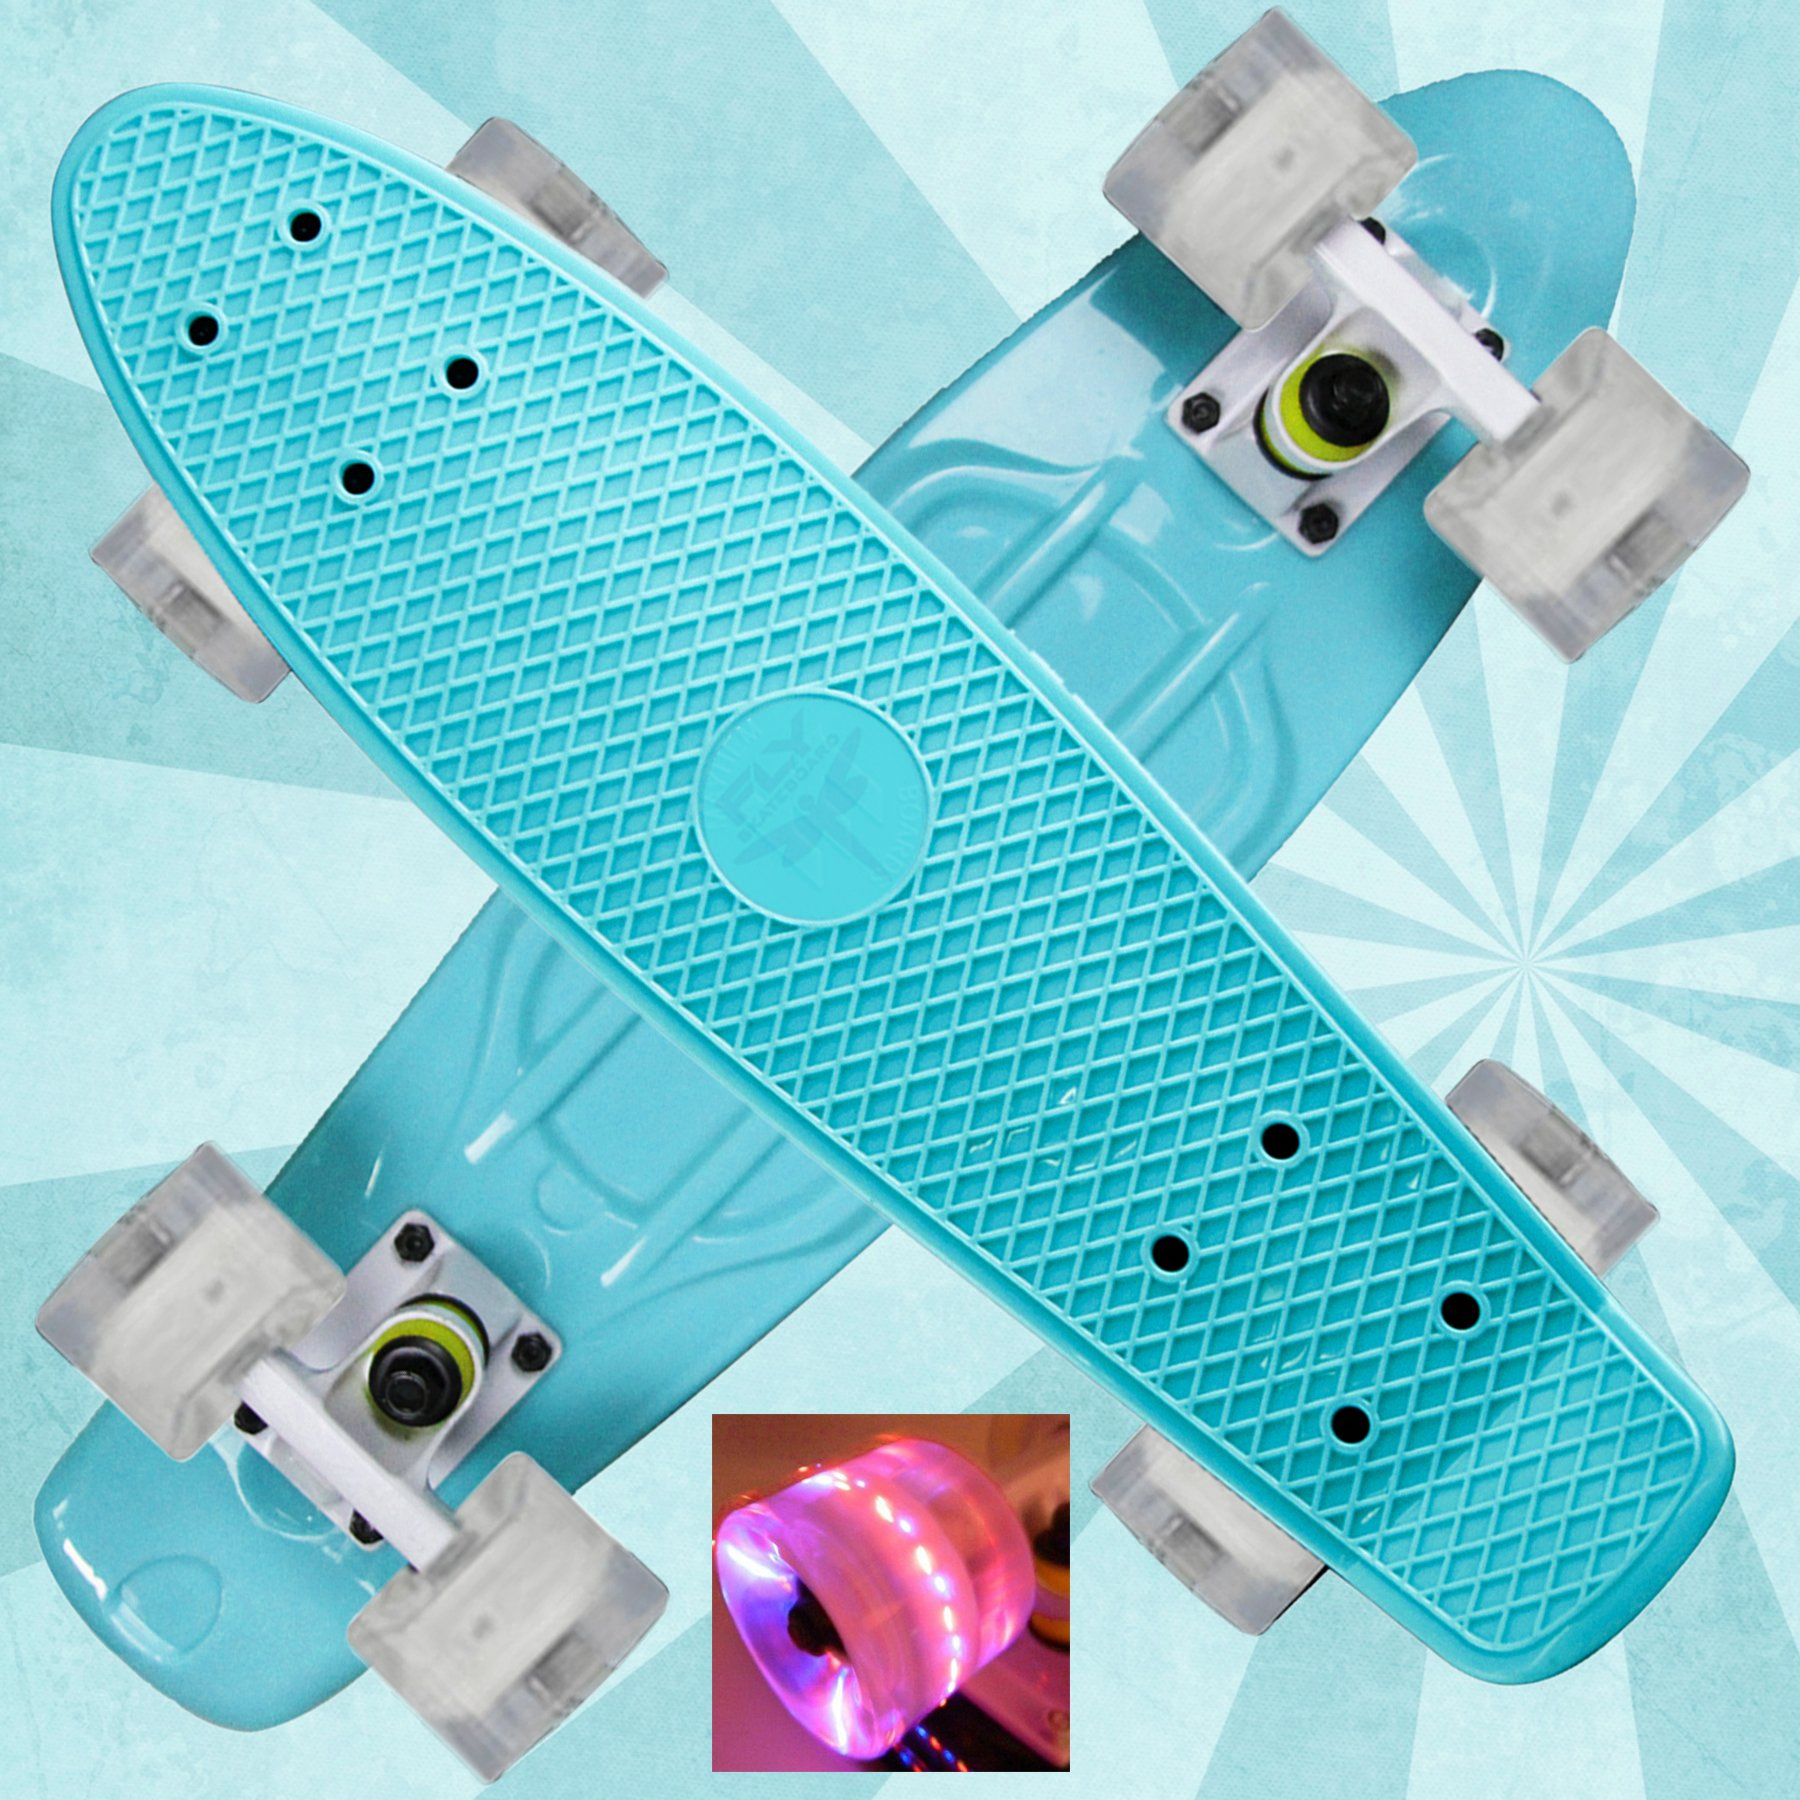 Brand new Beautiful ''Celestial Teal'' with Unique Fun Wheels 22'' Mini Retro Cruiser Plastic Skateboard Penny Style - Complete Board with ABEC 7 Bearings - Best Gift for boys or girls